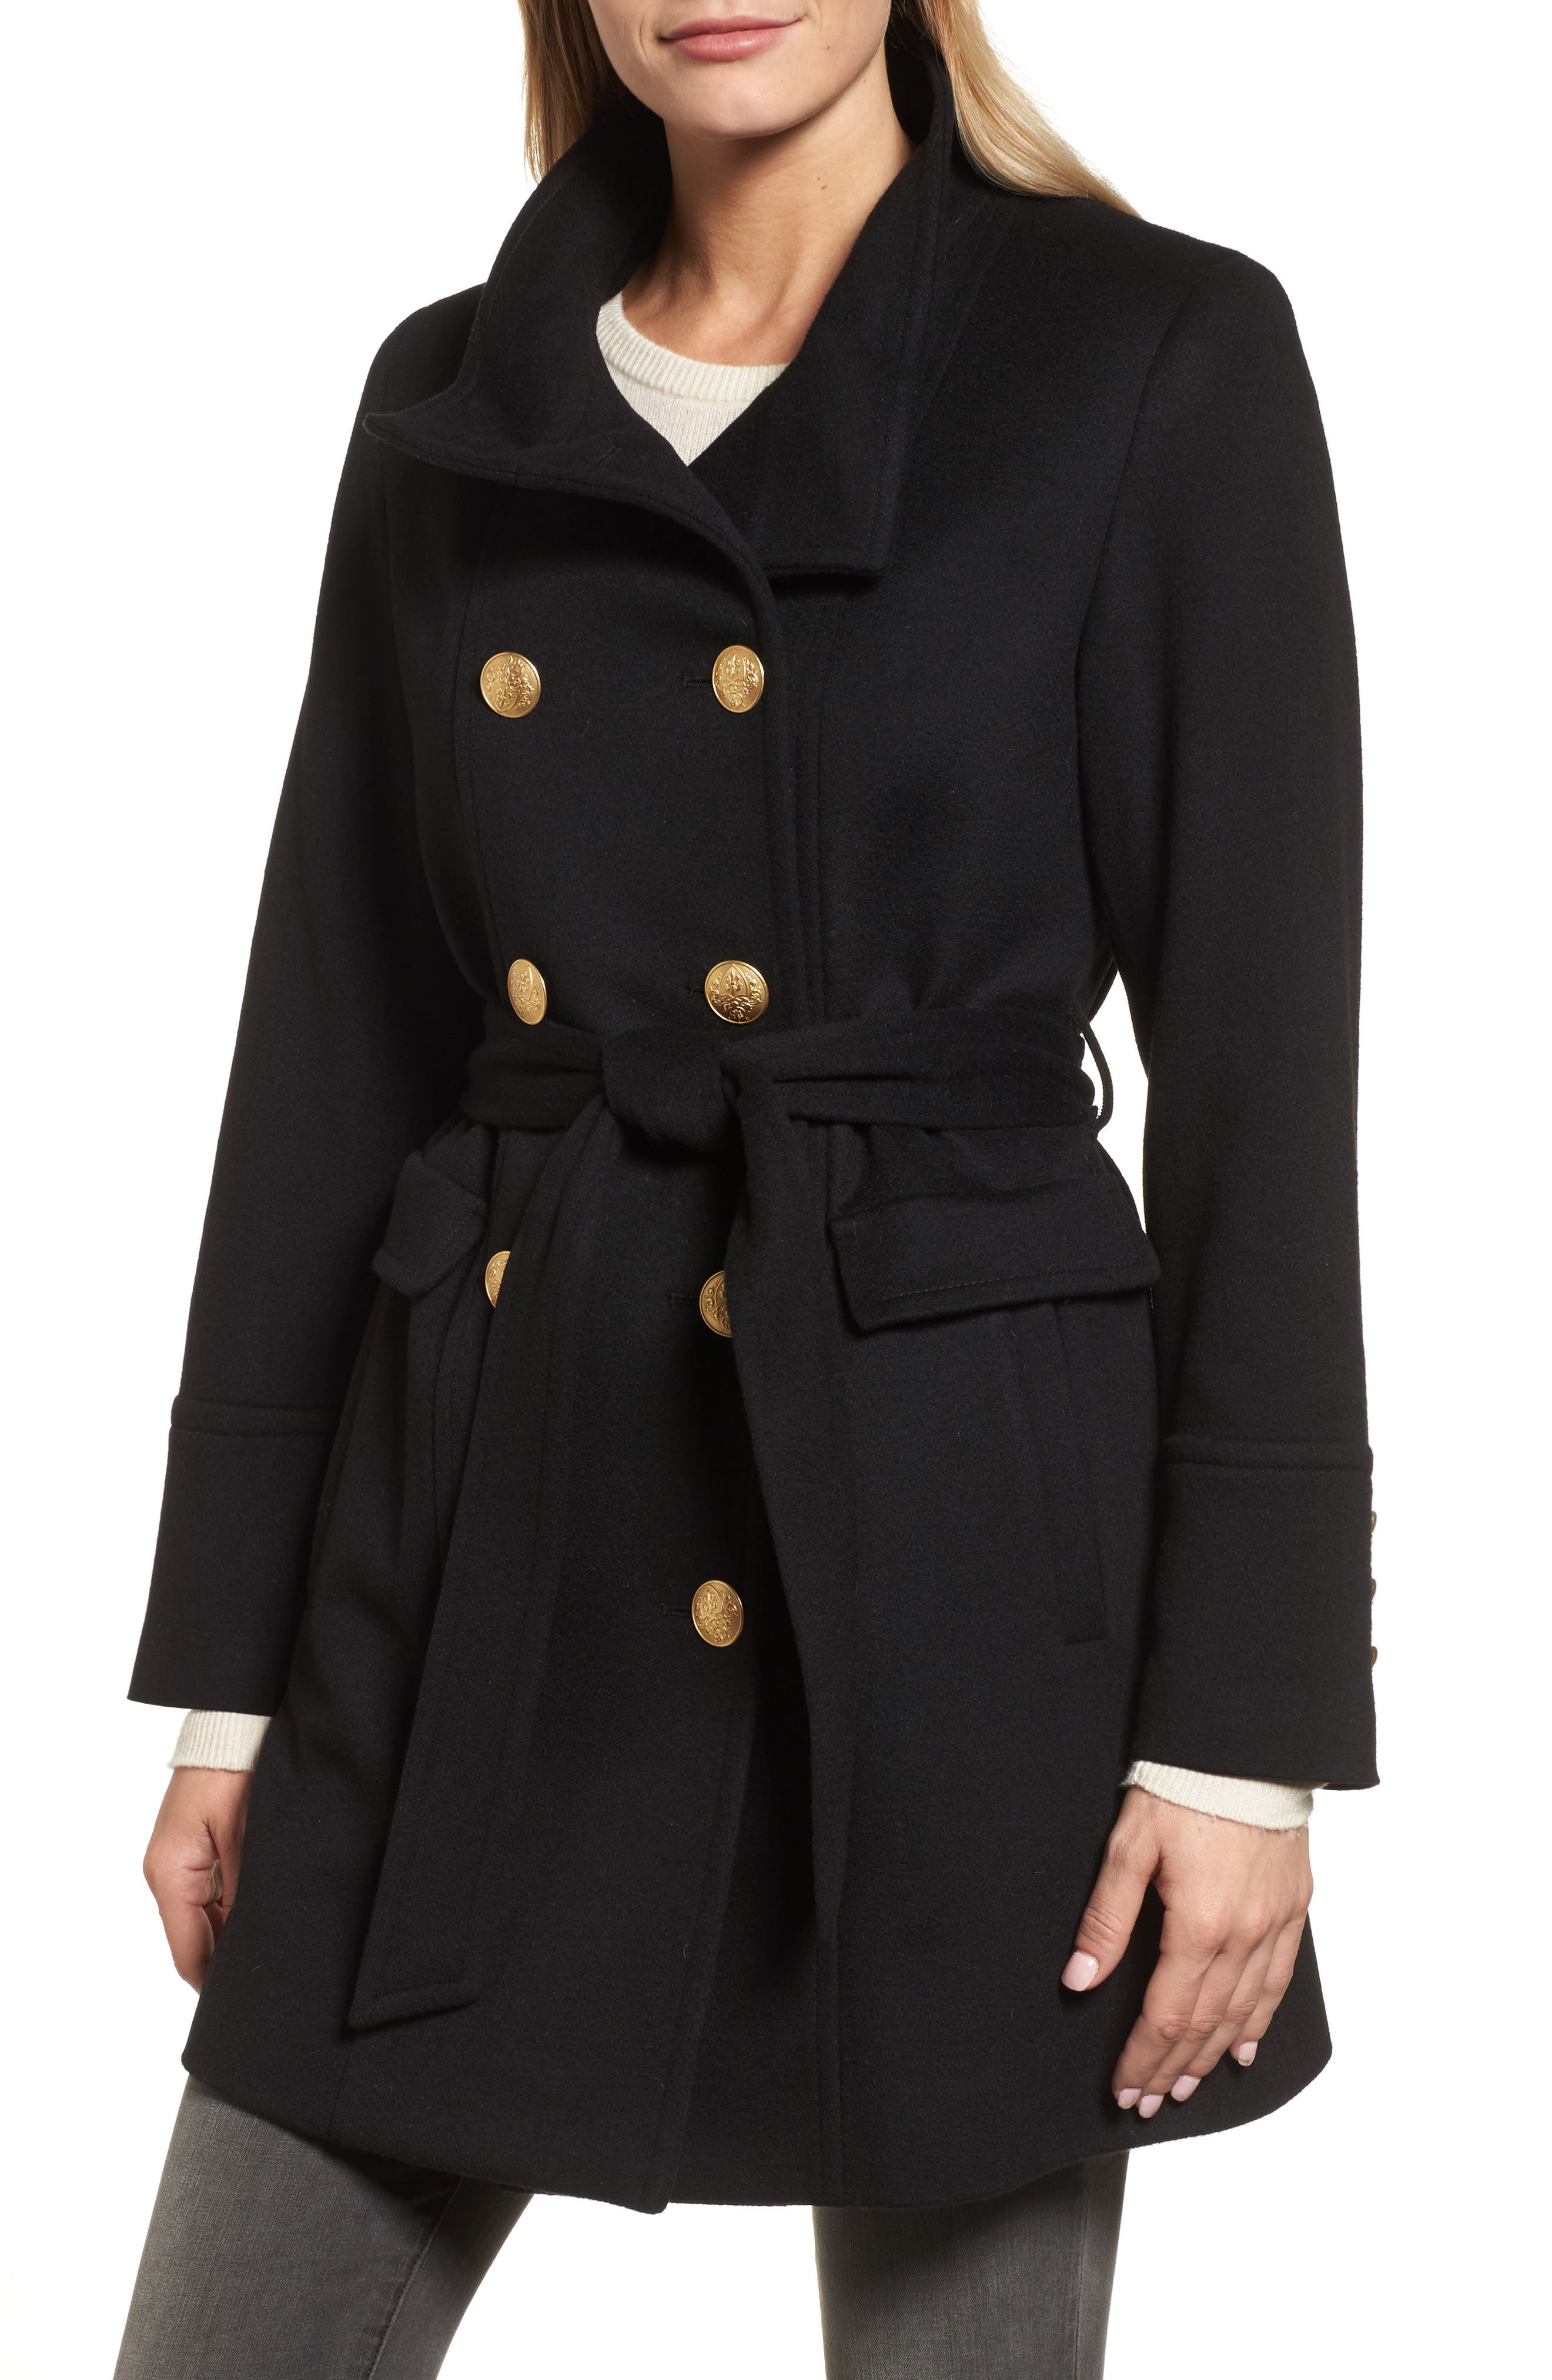 Alternate Image 1 Selected - Sofia Cashmere Wool & Cashmere Blend Military Coat